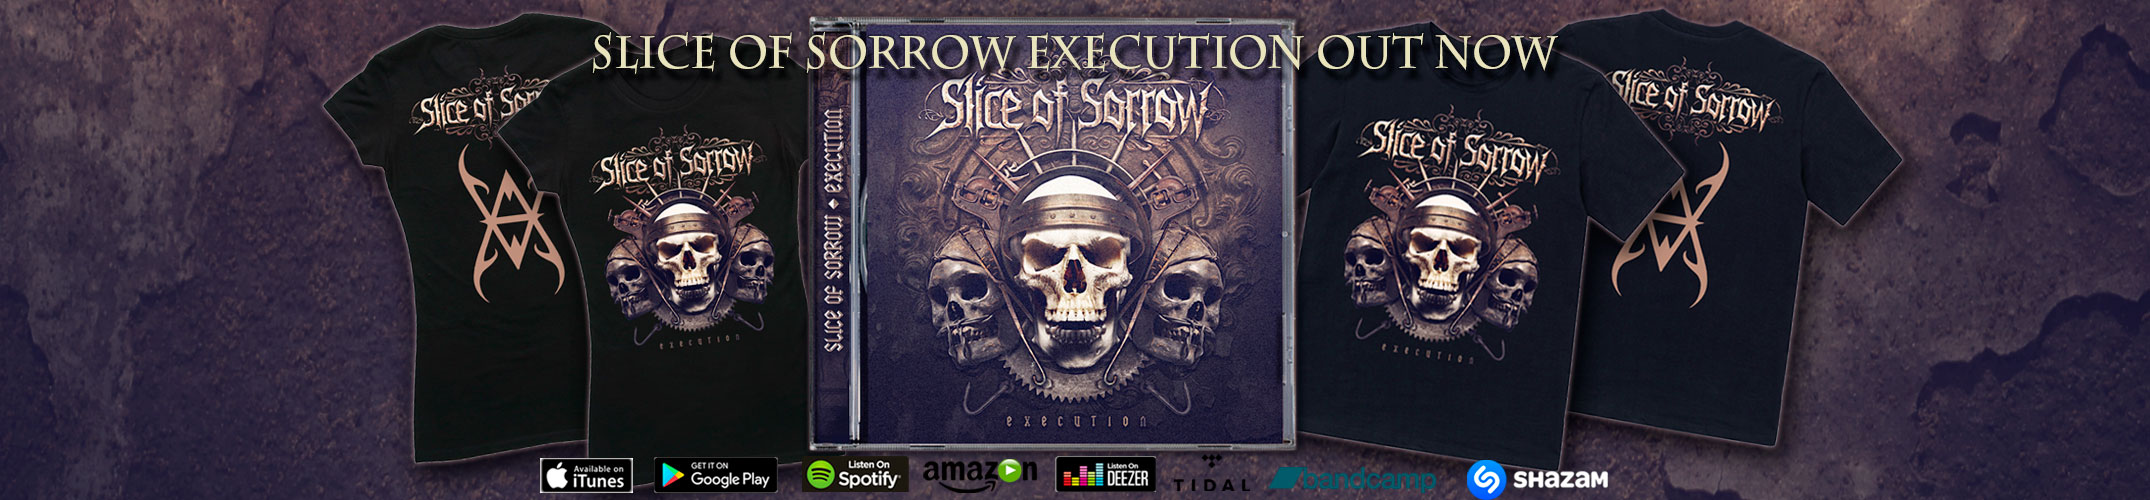 Slice of Sorrow Execution Out